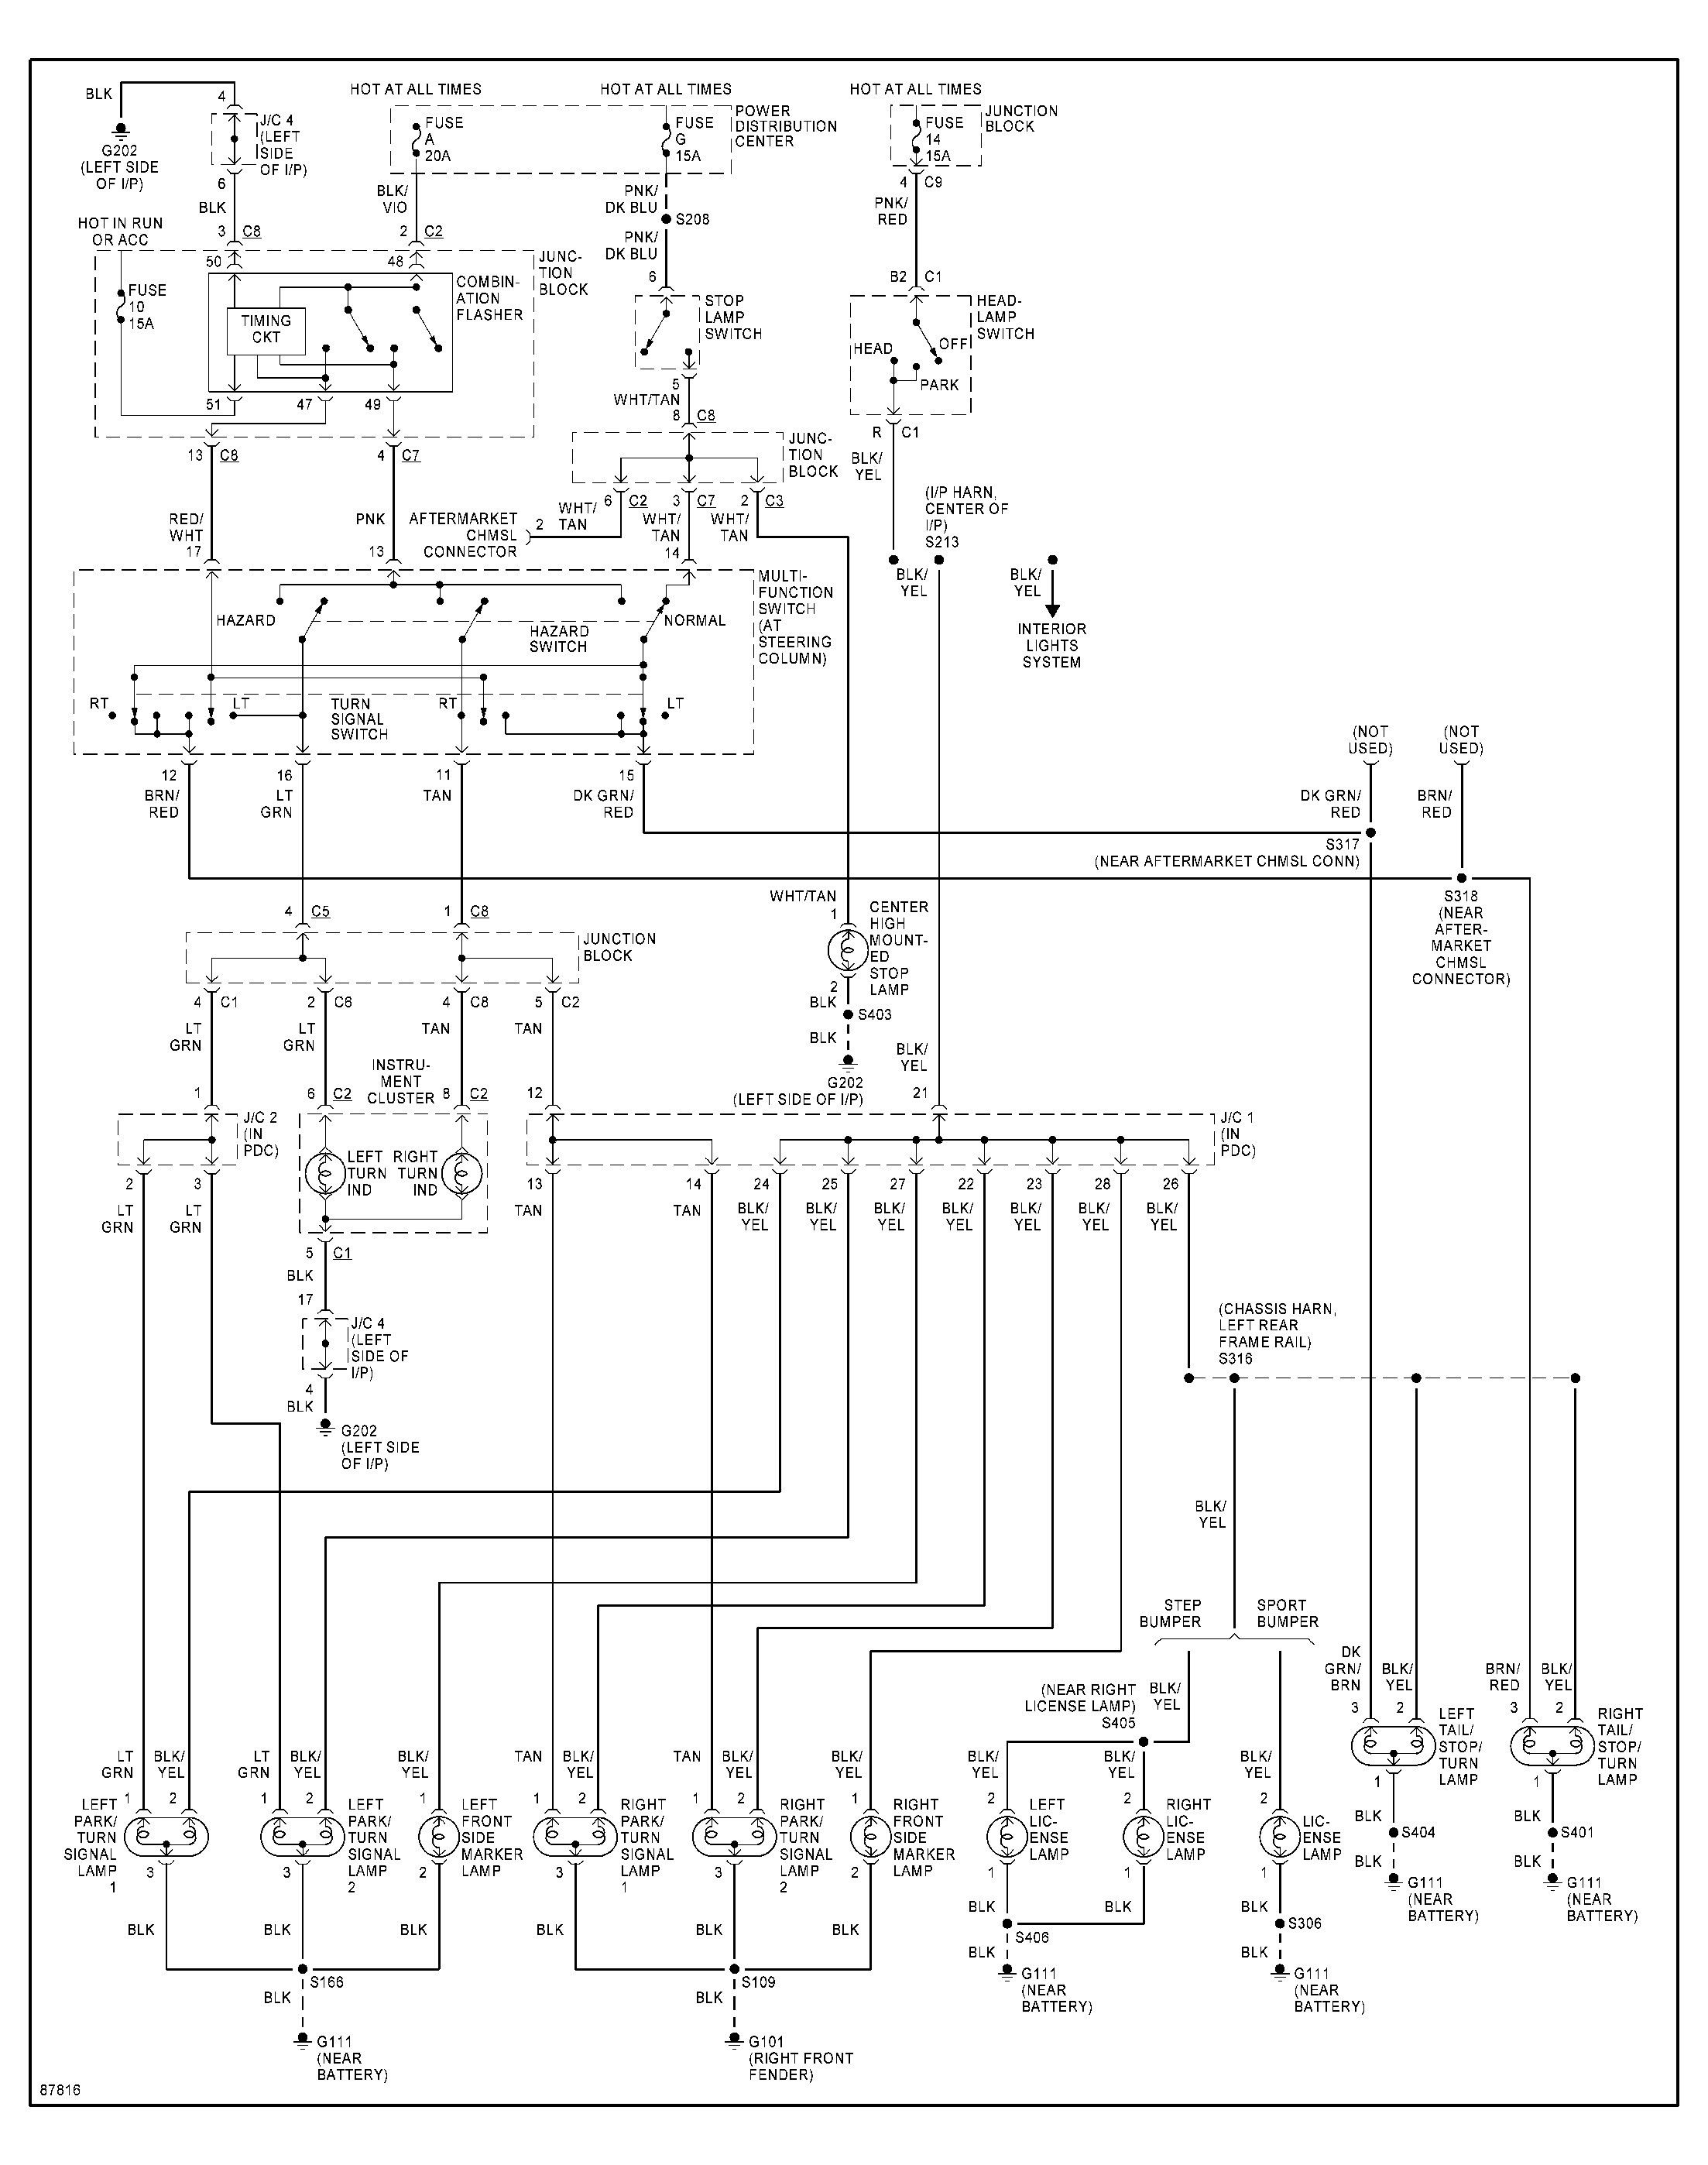 Unique 2002 Dodge Ram 1500 Instrument Cluster Wiring Diagram Diagram Diagramsample Diagramtemplate Wiringdi Dodge Ram 1500 2001 Dodge Ram 1500 Dodge Dakota